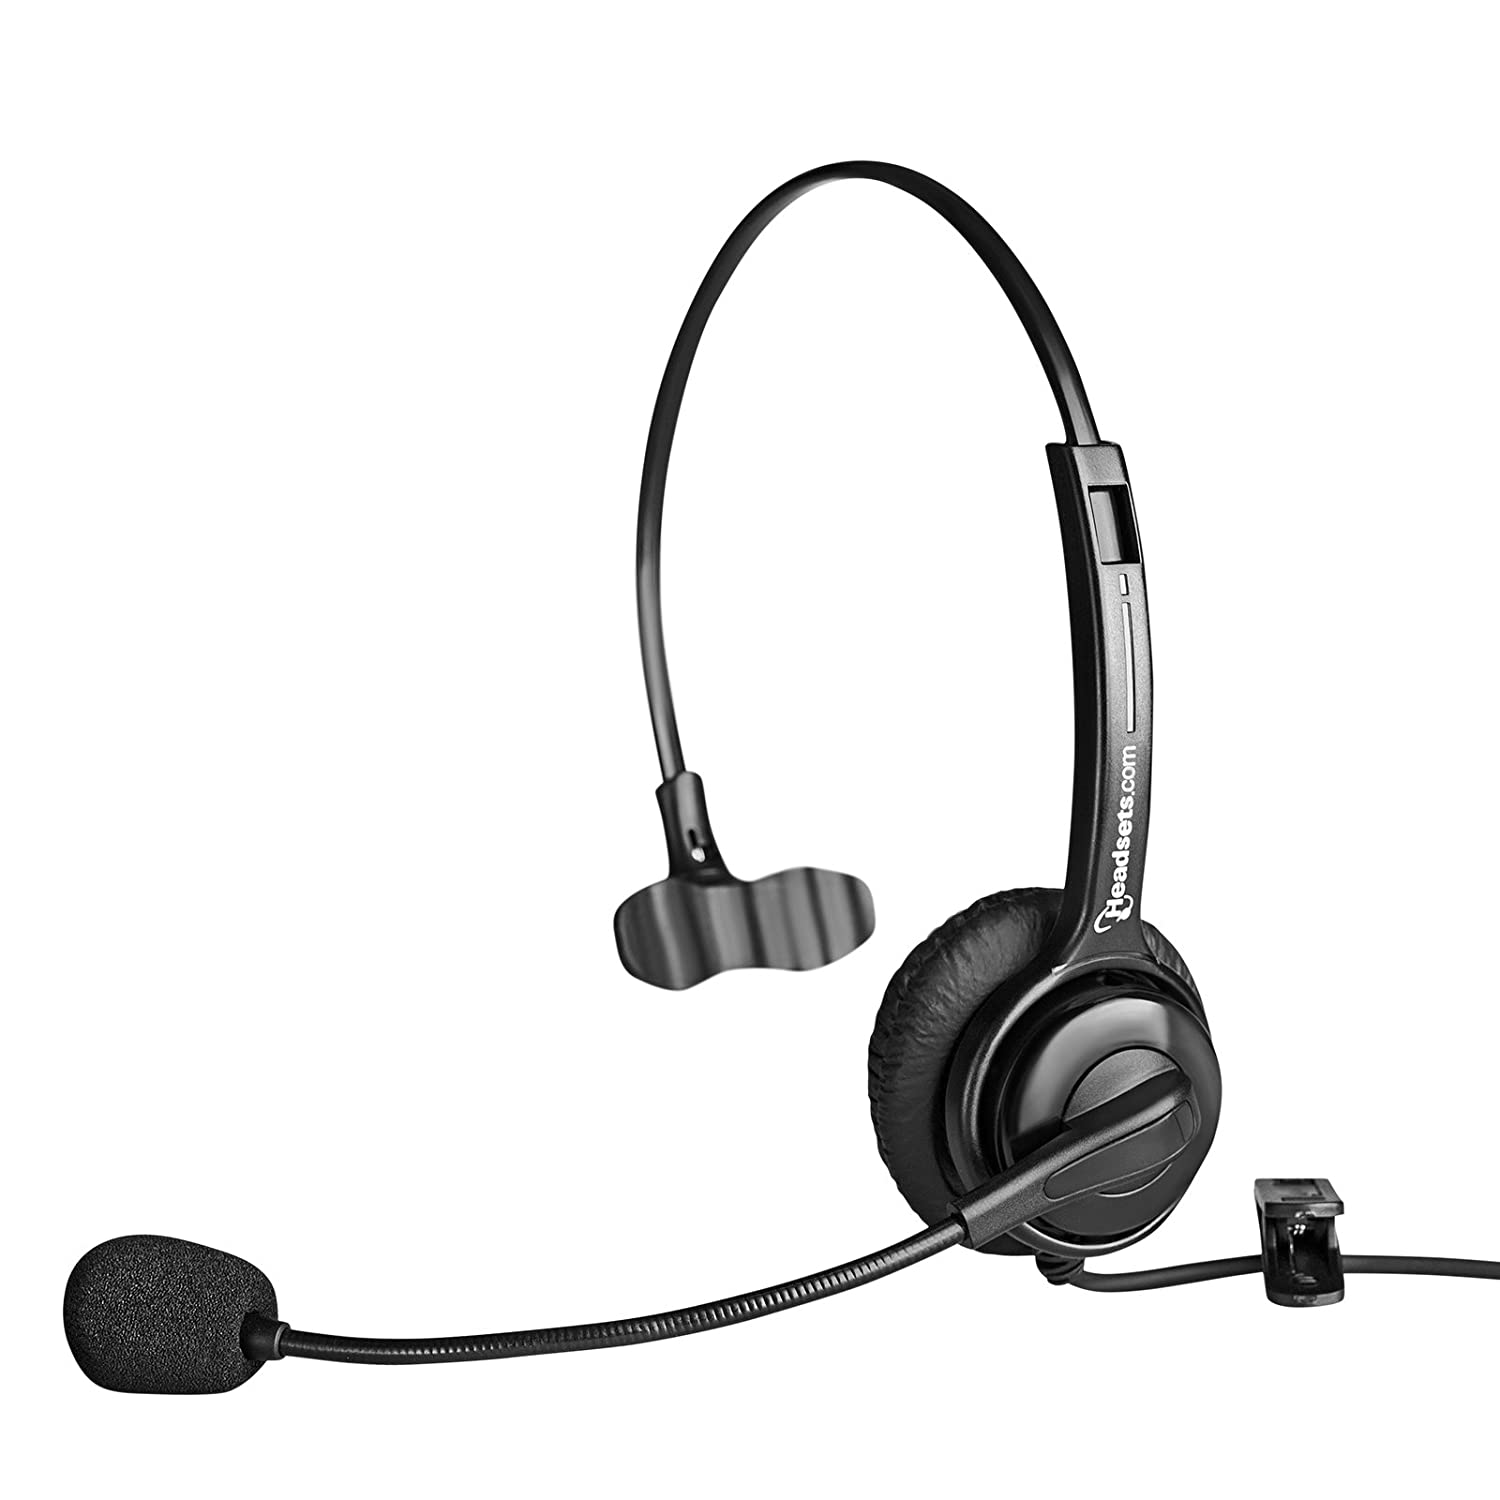 Executive Pro Single-Ear Computer USB Headset – Works with PC and Mac – Great for Skype or Voice Dictation (Noise-Canceling) Headsets.com